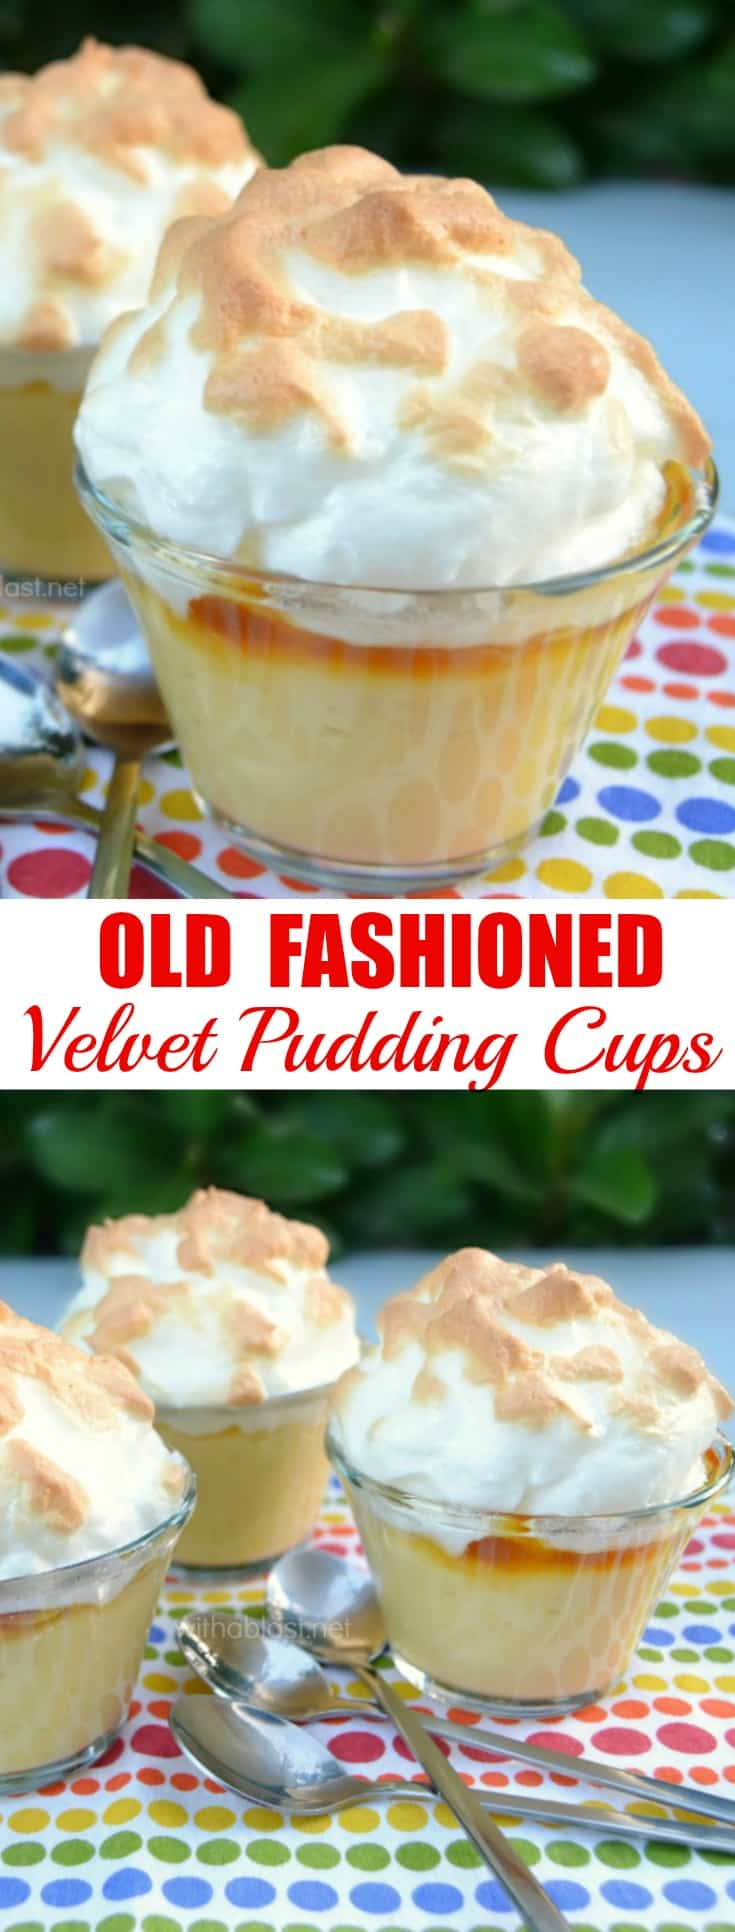 Old-Fashioned Velvet Pudding Cups (also known as Fluweel Poeding) are silky smooth with a delicious sweet layer between the pudding and the meringue - serve warm or at room temperature  #Pudding #FluweelPoeding #BakedDessert